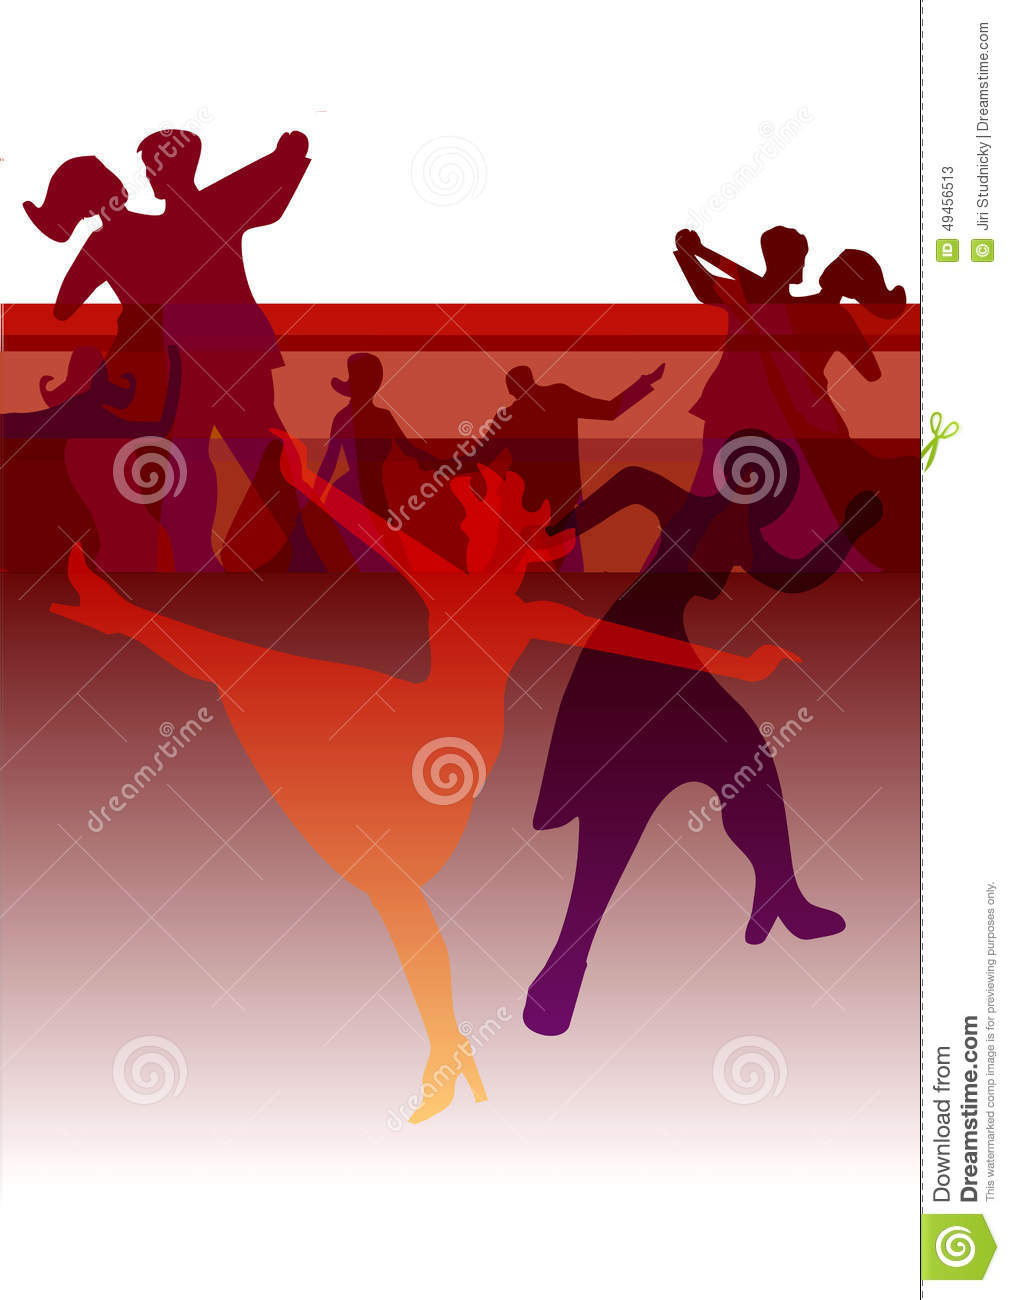 Dance Party Invitation Background Stock Vector - Illustration of ...